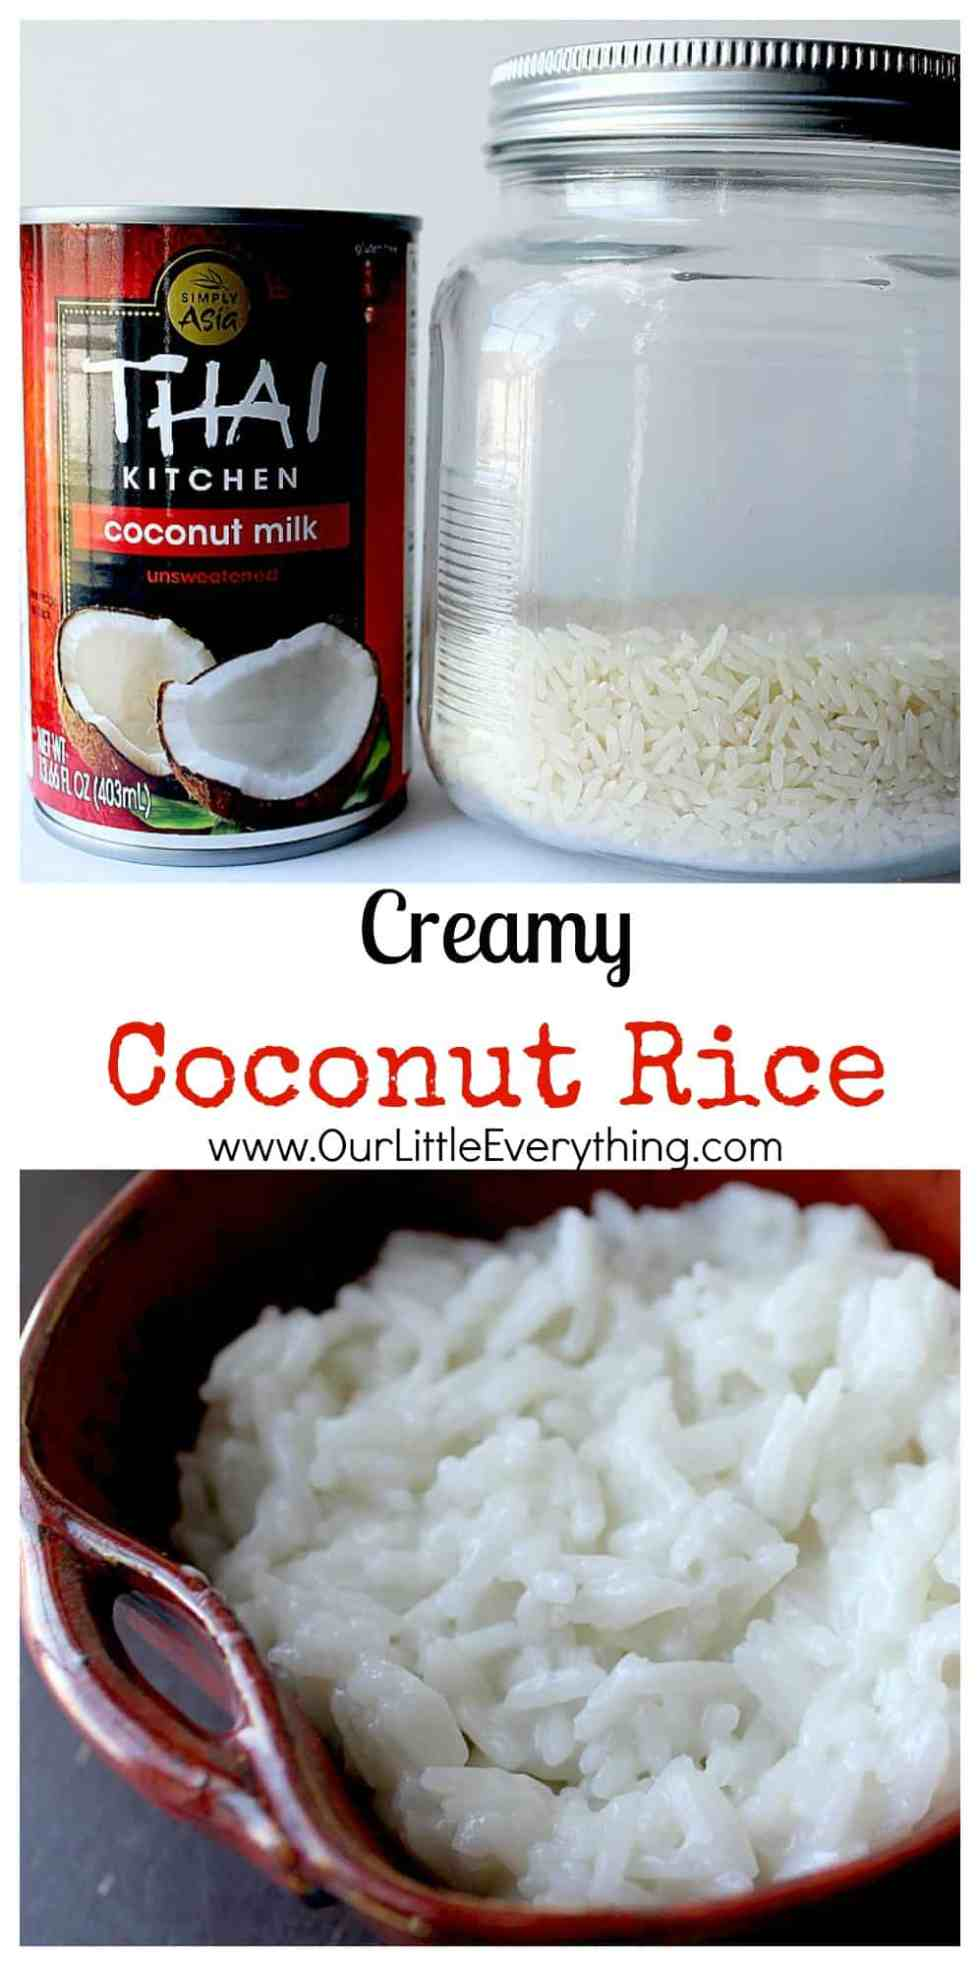 Creamy Coconut Rice - the easiest way to make the creamiest coconut rice that is just loaded with flavor! This coconut rice recipe is made at least once a week and goes so well with so many dishes! Definitely, a family friendly recipe everyone is sure to love! | www.OurLittleEverything.com